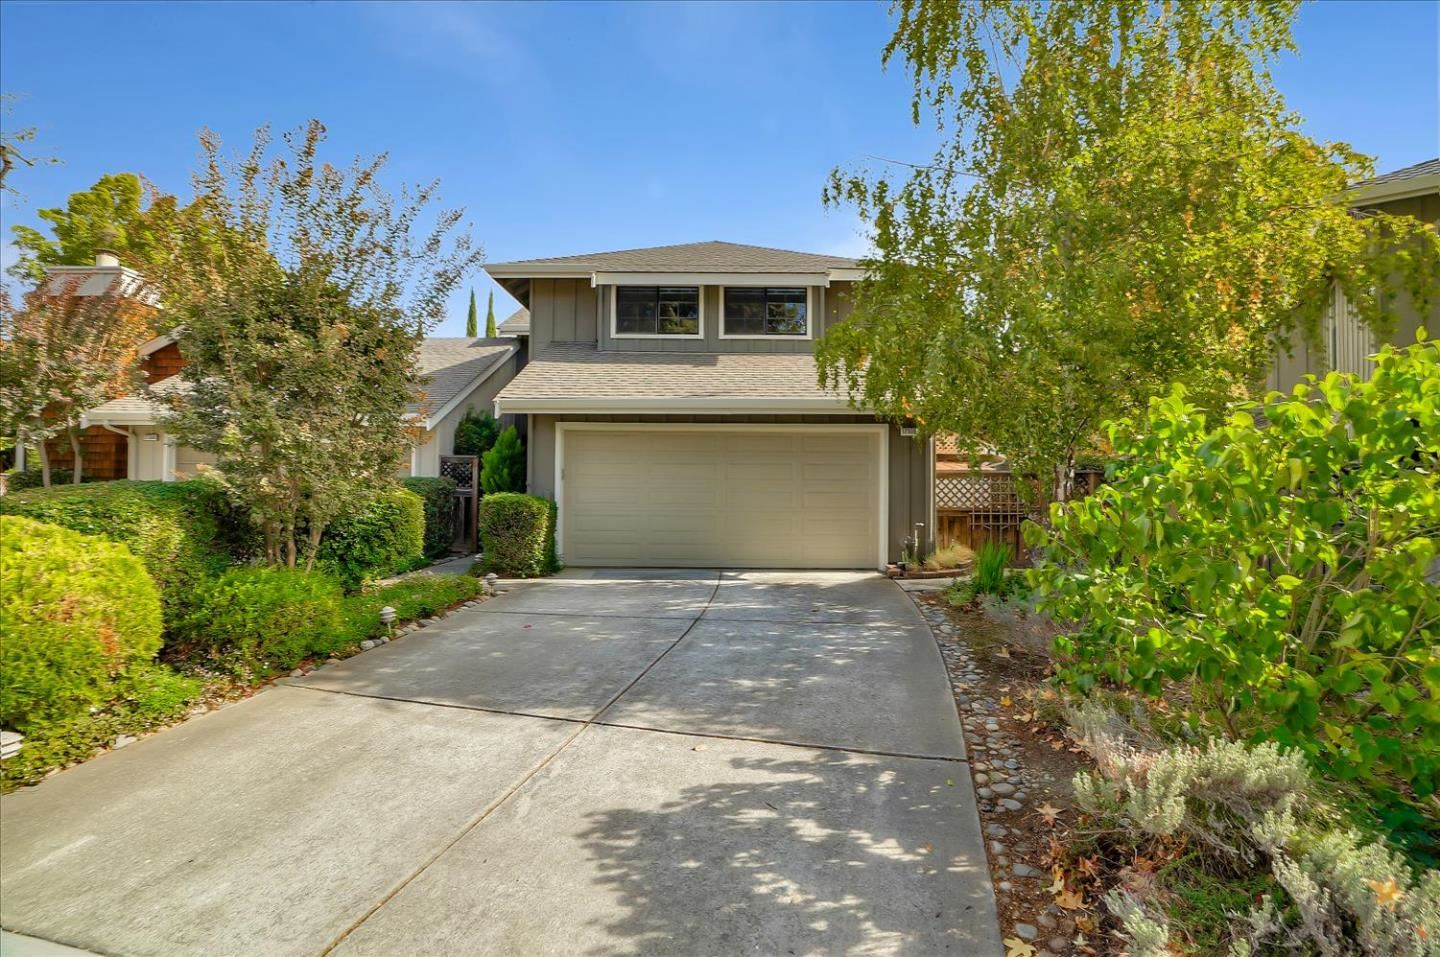 Photo for 17506 Carriage Lamp WAY, MORGAN HILL, CA 95037 (MLS # ML81819352)